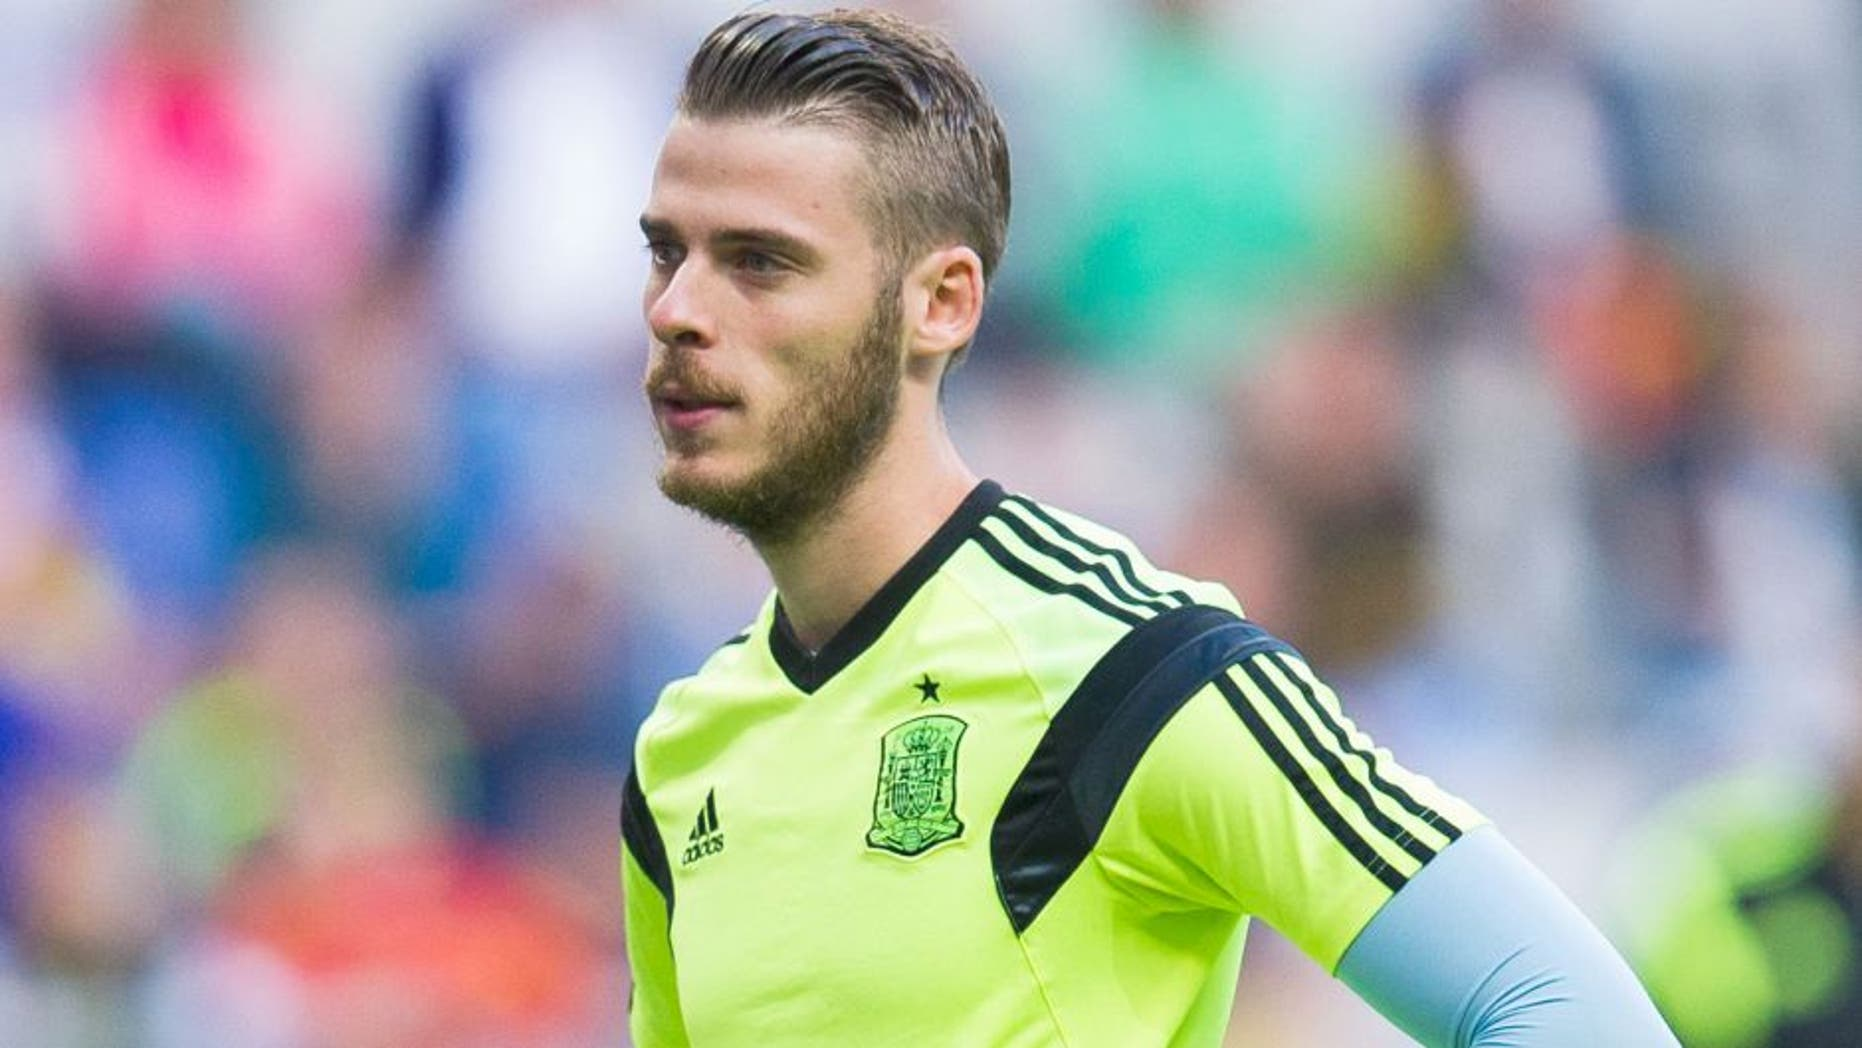 OVIEDO, SPAIN - SEPTEMBER 05: David De Gea of Spain looks on prior to the start the Spain v Slovakia EURO 2016 Qualifier at Carlos Tartiere on September 5, 2015 in Oviedo, Spain. (Photo by Juan Manuel Serrano Arce/Getty Images)